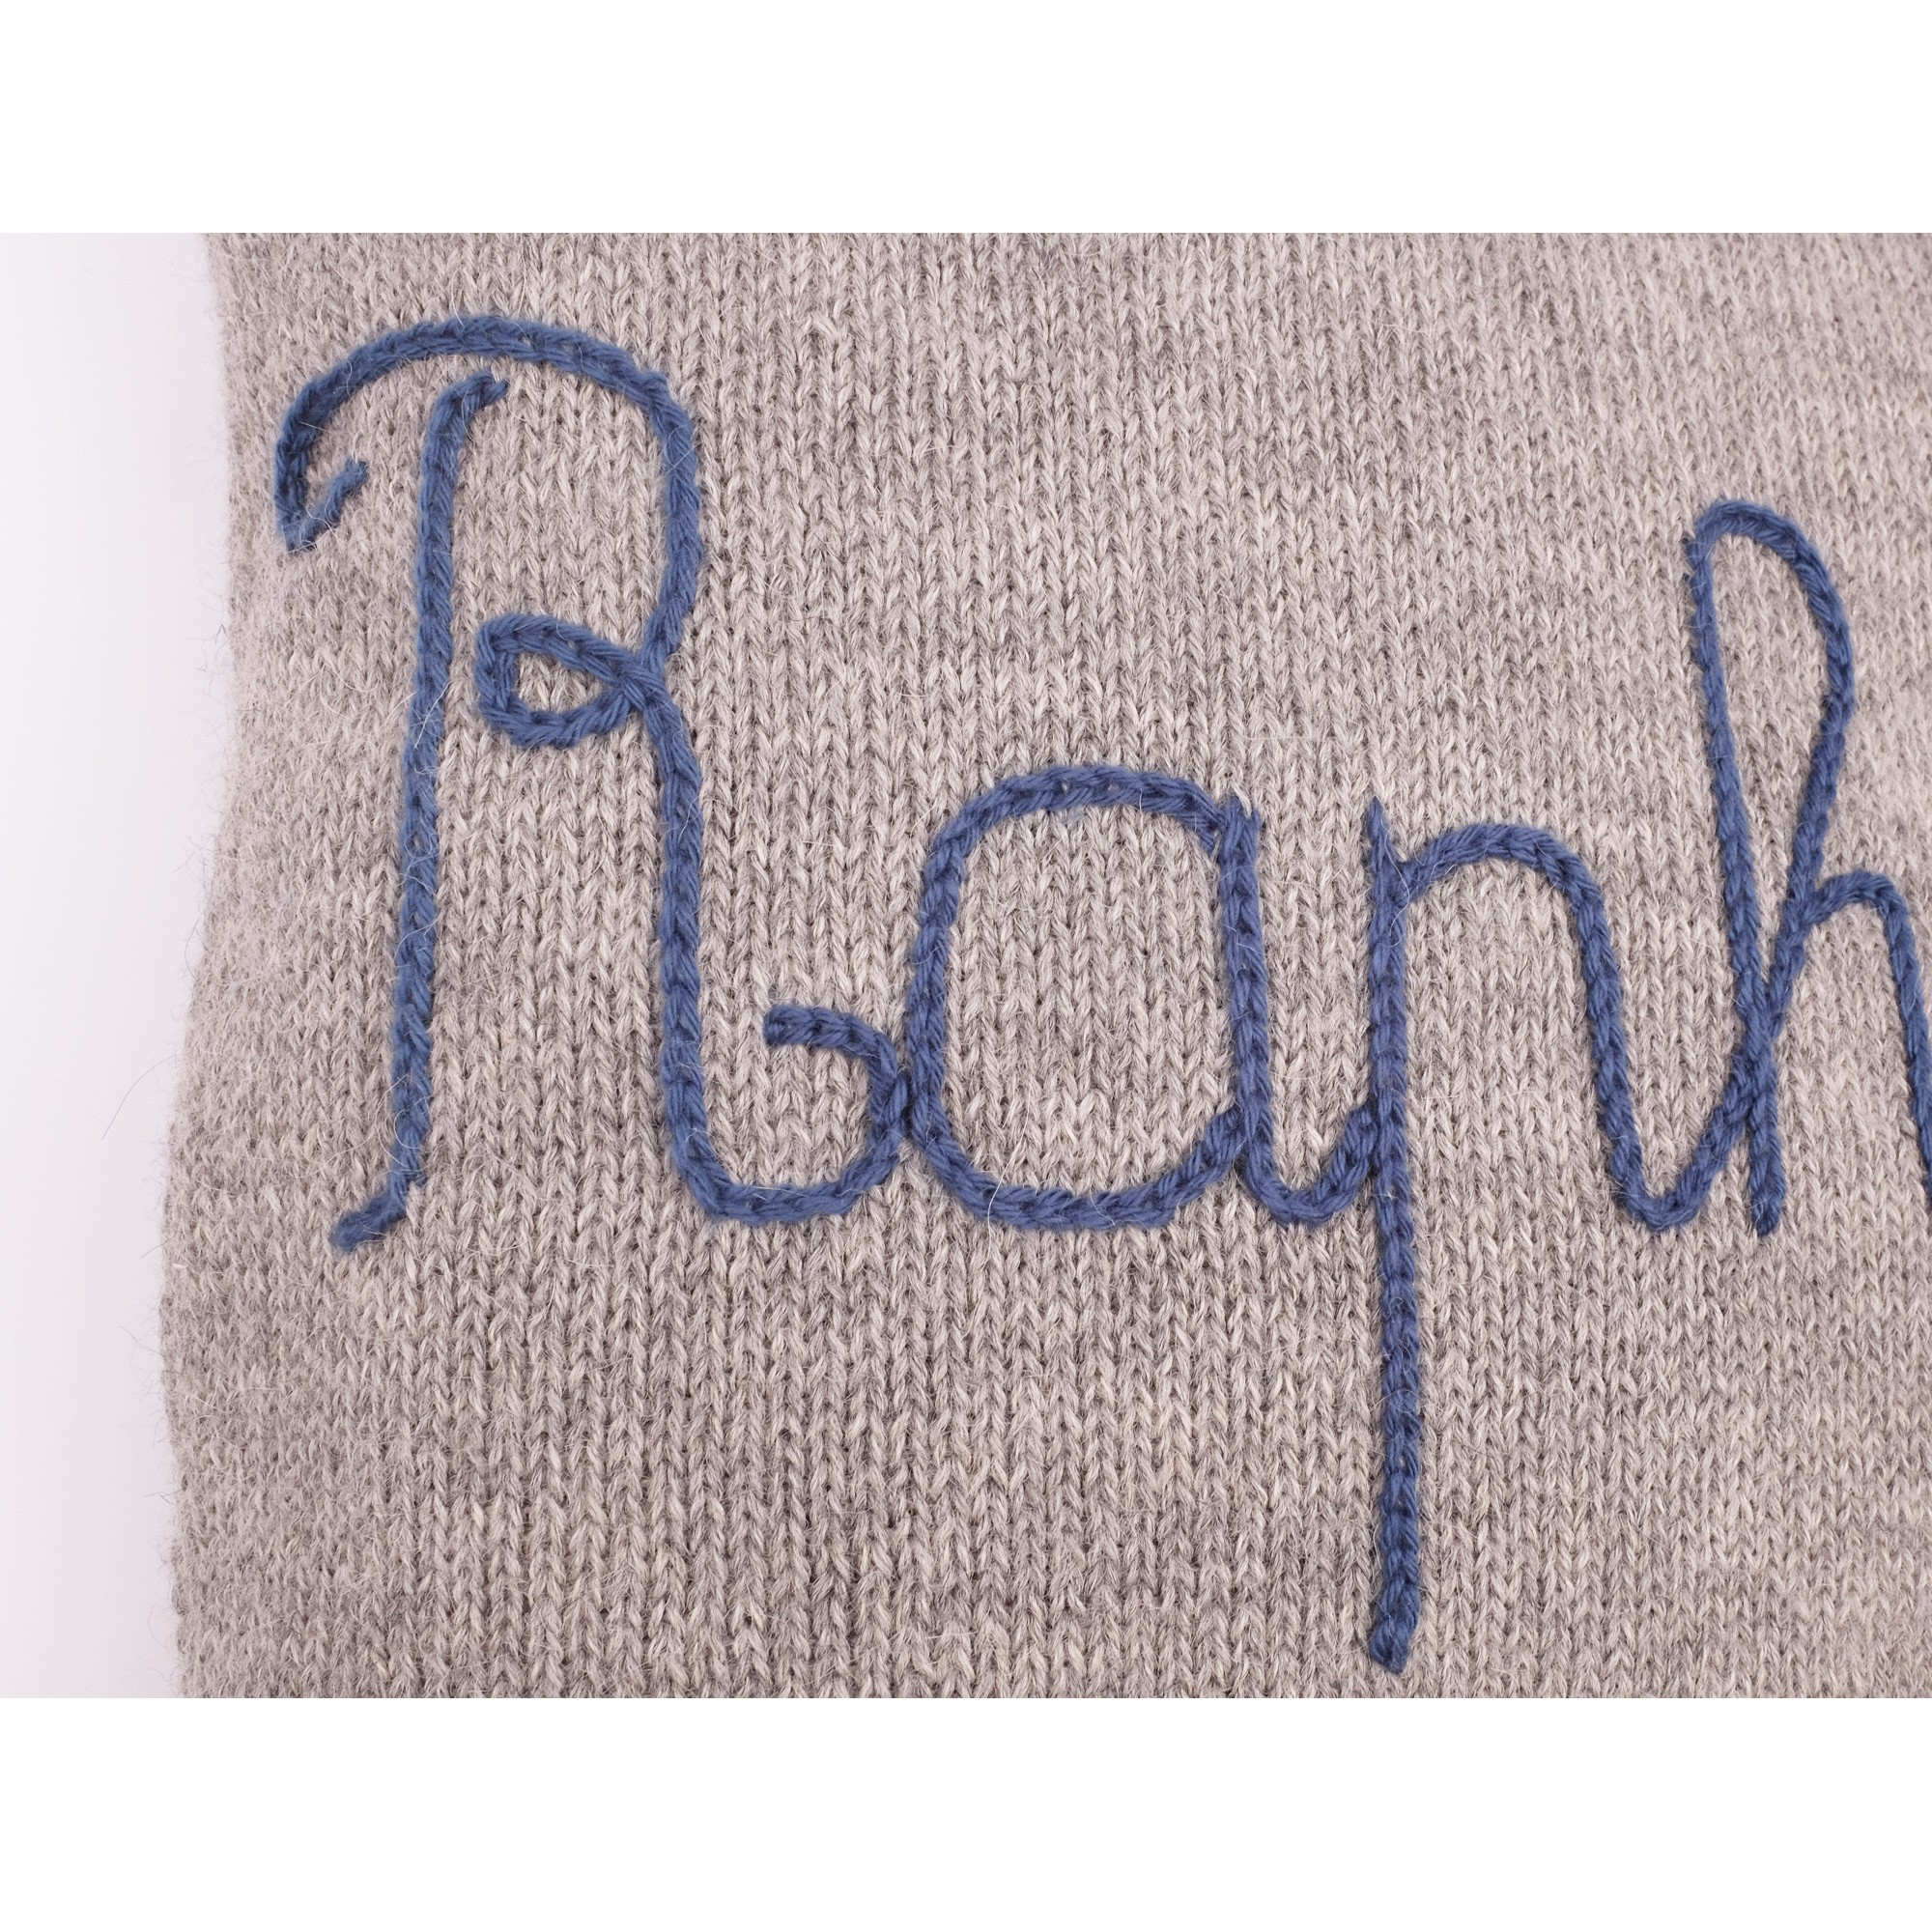 Customizable cushion grey with blue embroidery